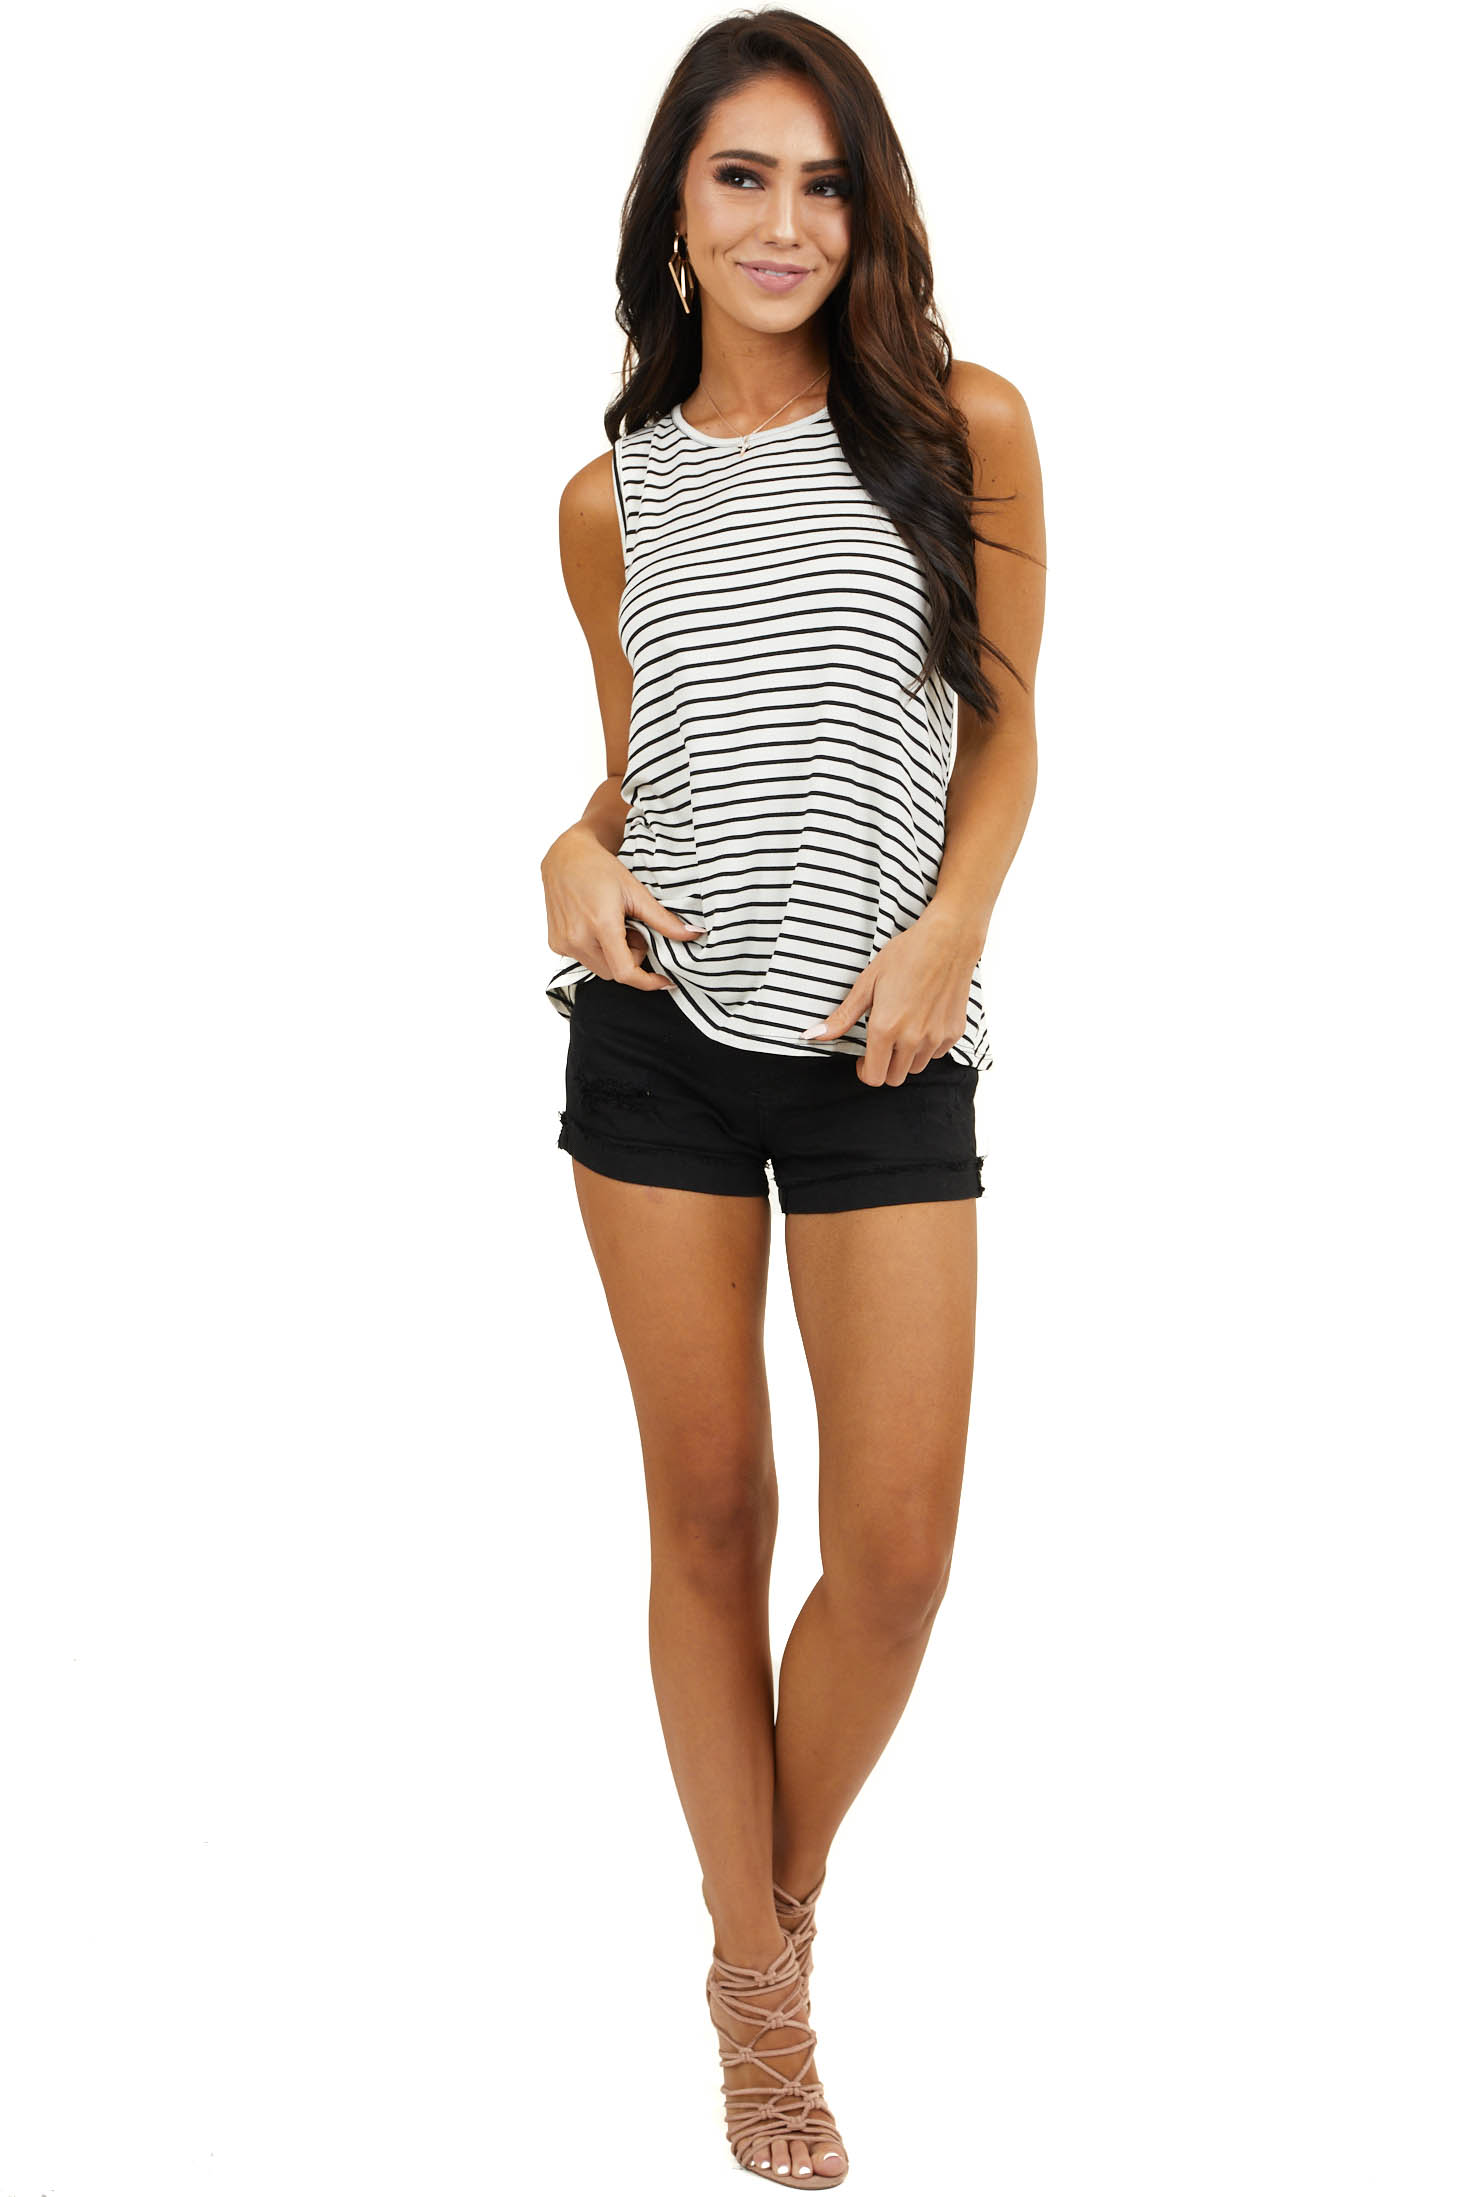 Off White and Black Striped Print Sleeveless Knit Top